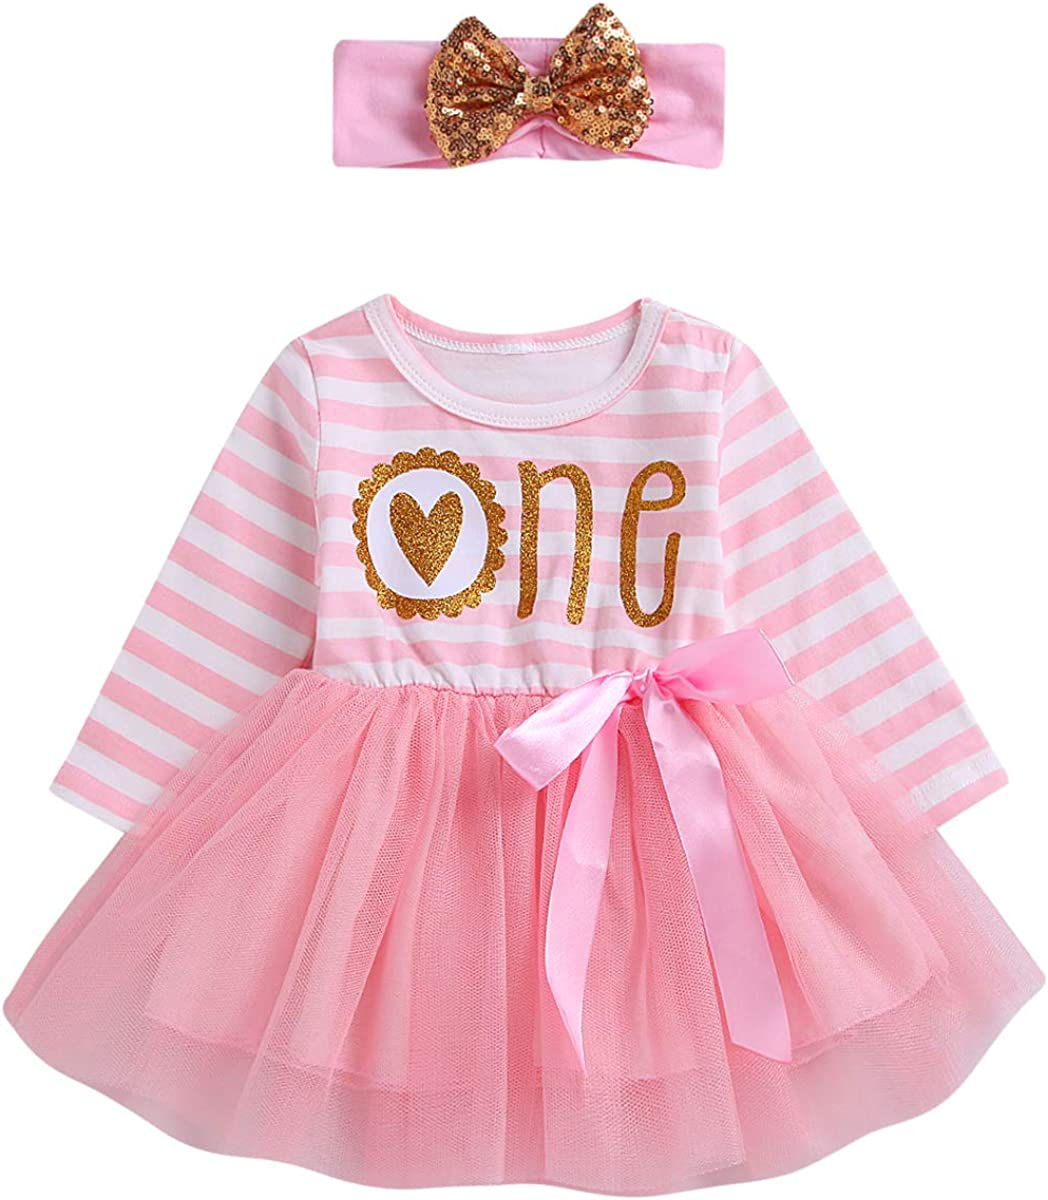 ODASDO Baby Safety and trust Girl sold out First Birthday Print Tutu Donut Dress Princess